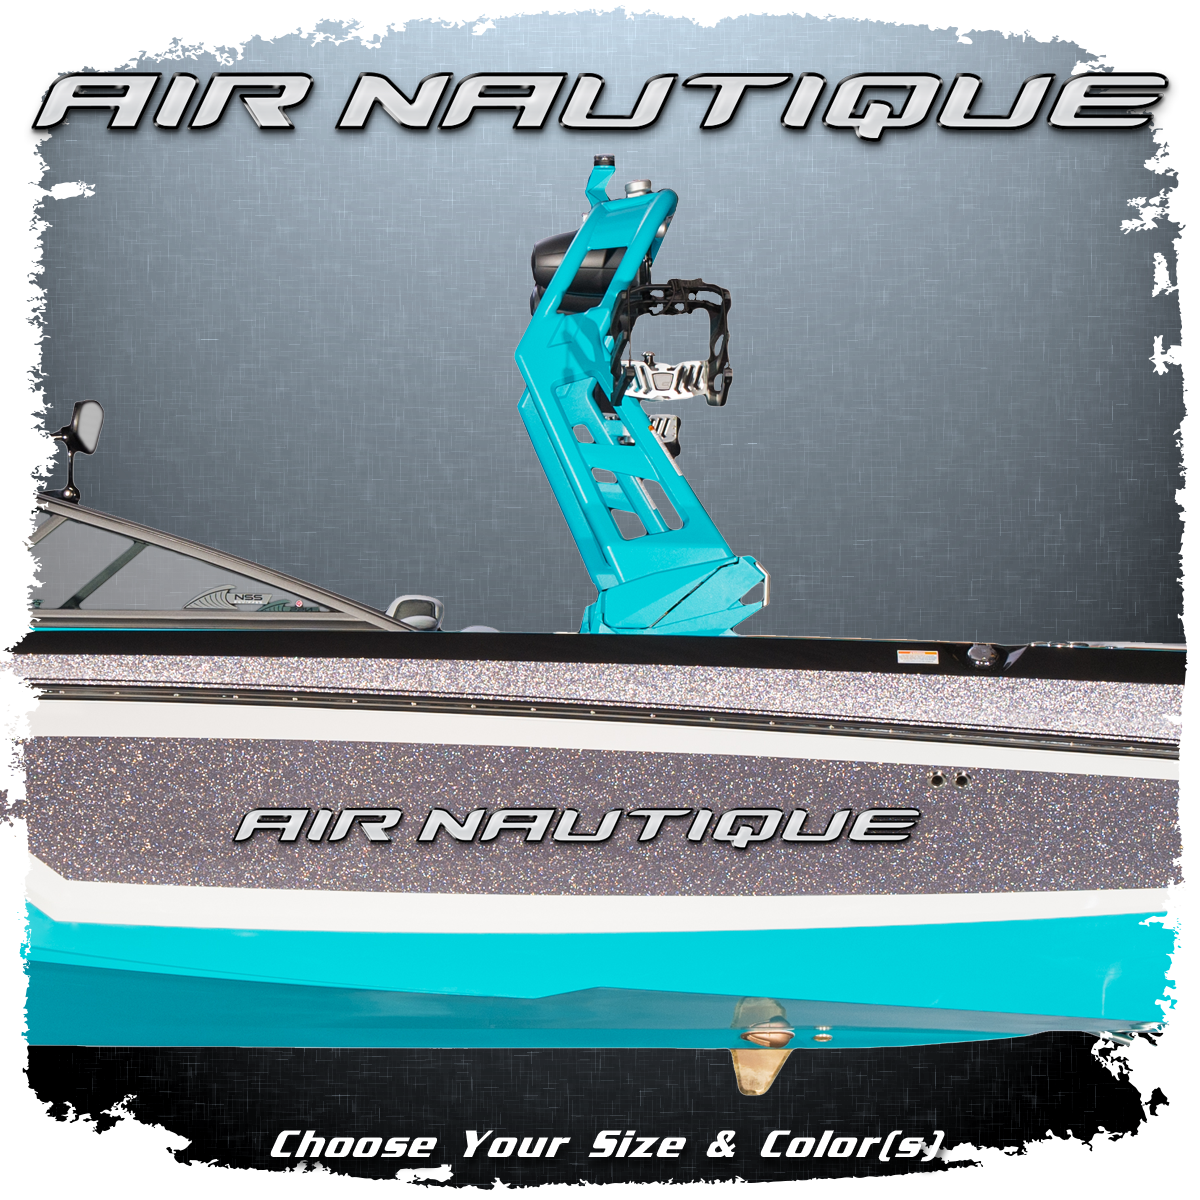 Domed Air Nautique Decal, Choose Your Size & Colors (1 included)